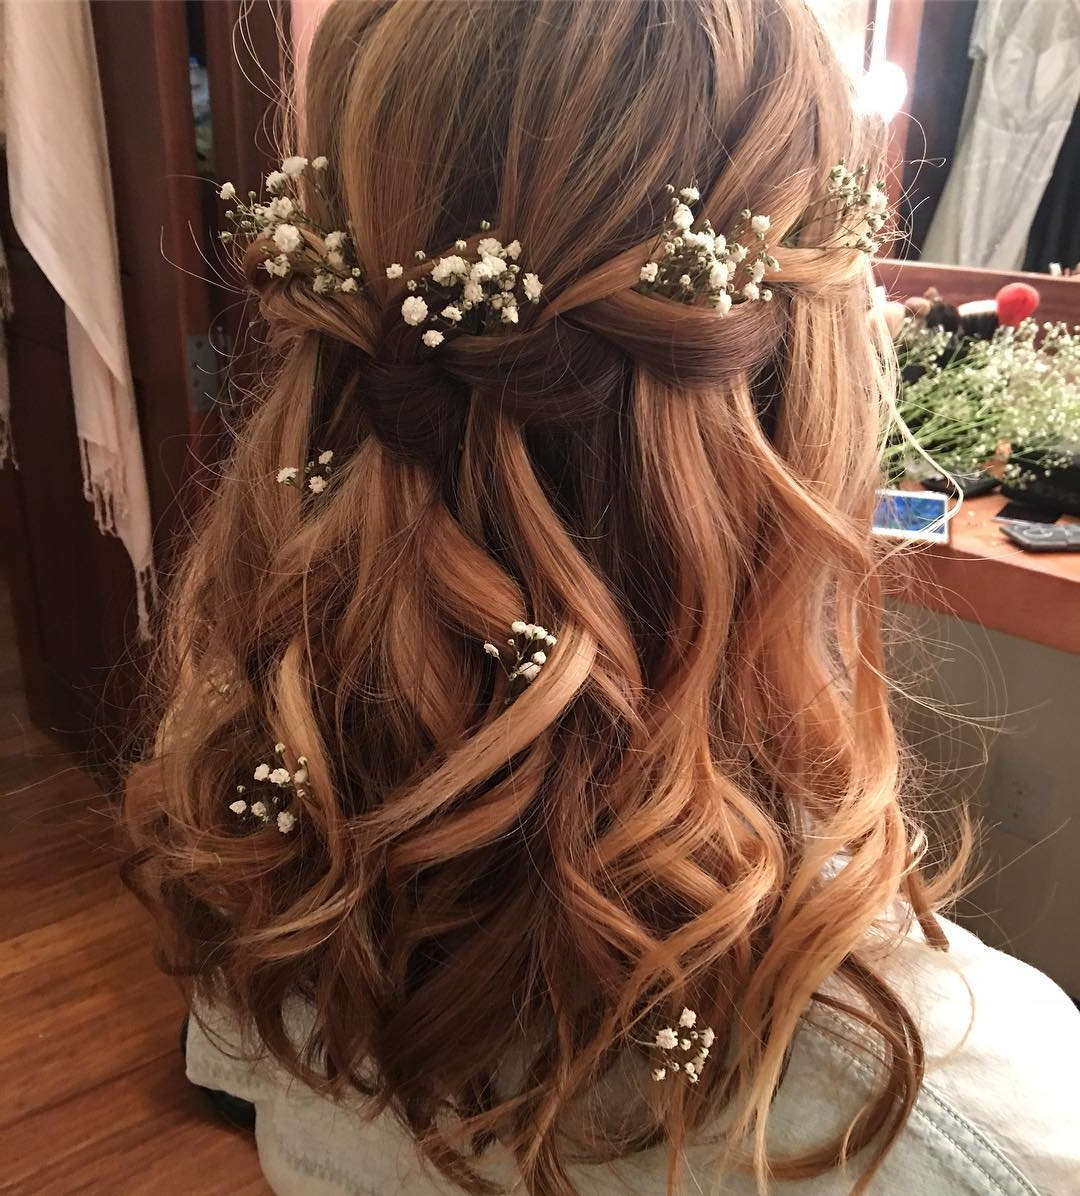 Preferred Dimensional Waves In Half Up Wedding Hairstyles Inside 10 Lavish Wedding Hairstyles For Long Hair – Wedding Hairstyle Ideas (View 17 of 20)